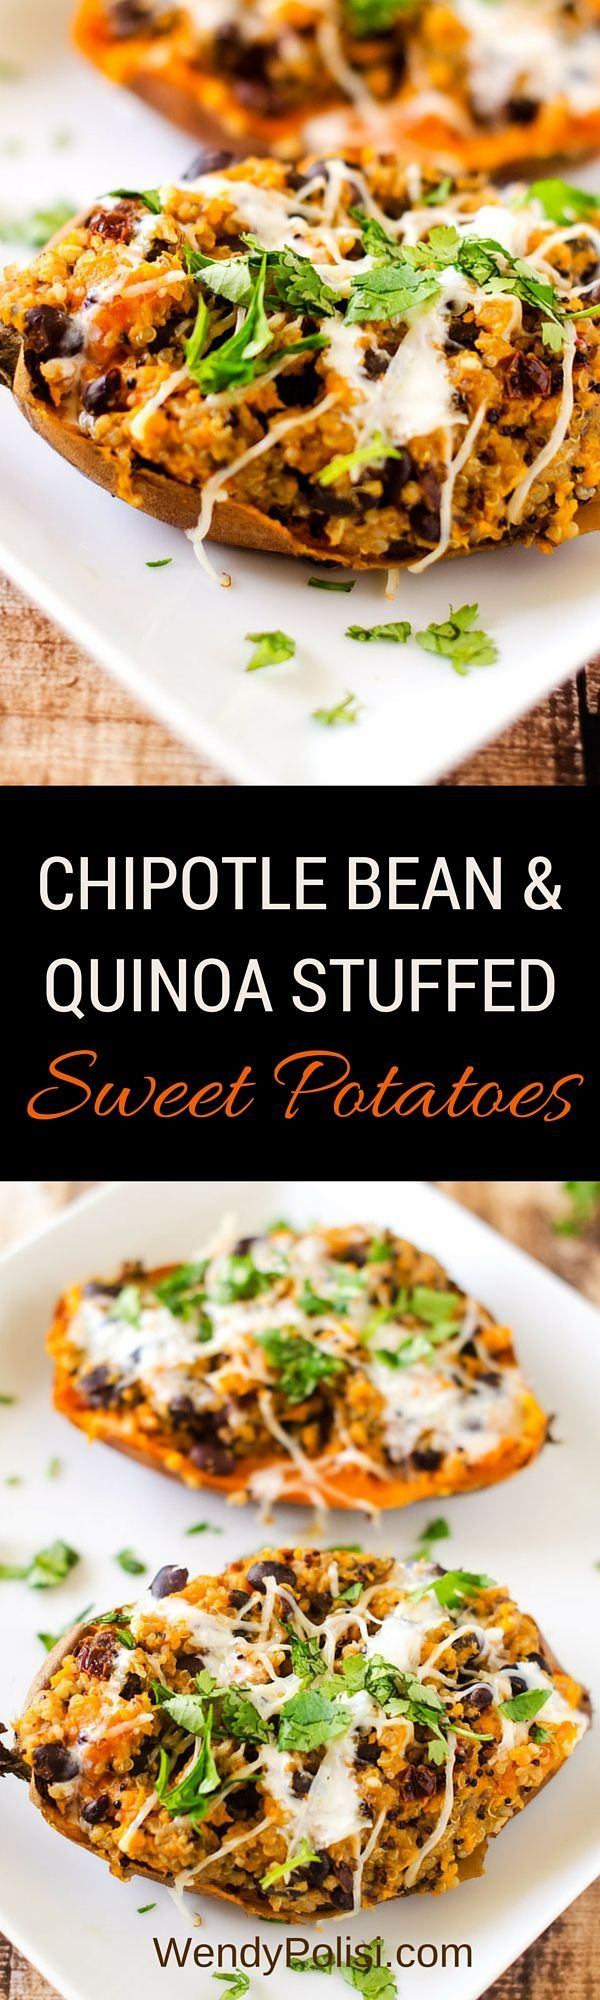 Chipotle Bean & Quinoa Stuffed Sweet Potatoes with Chipotle Lime Sauce